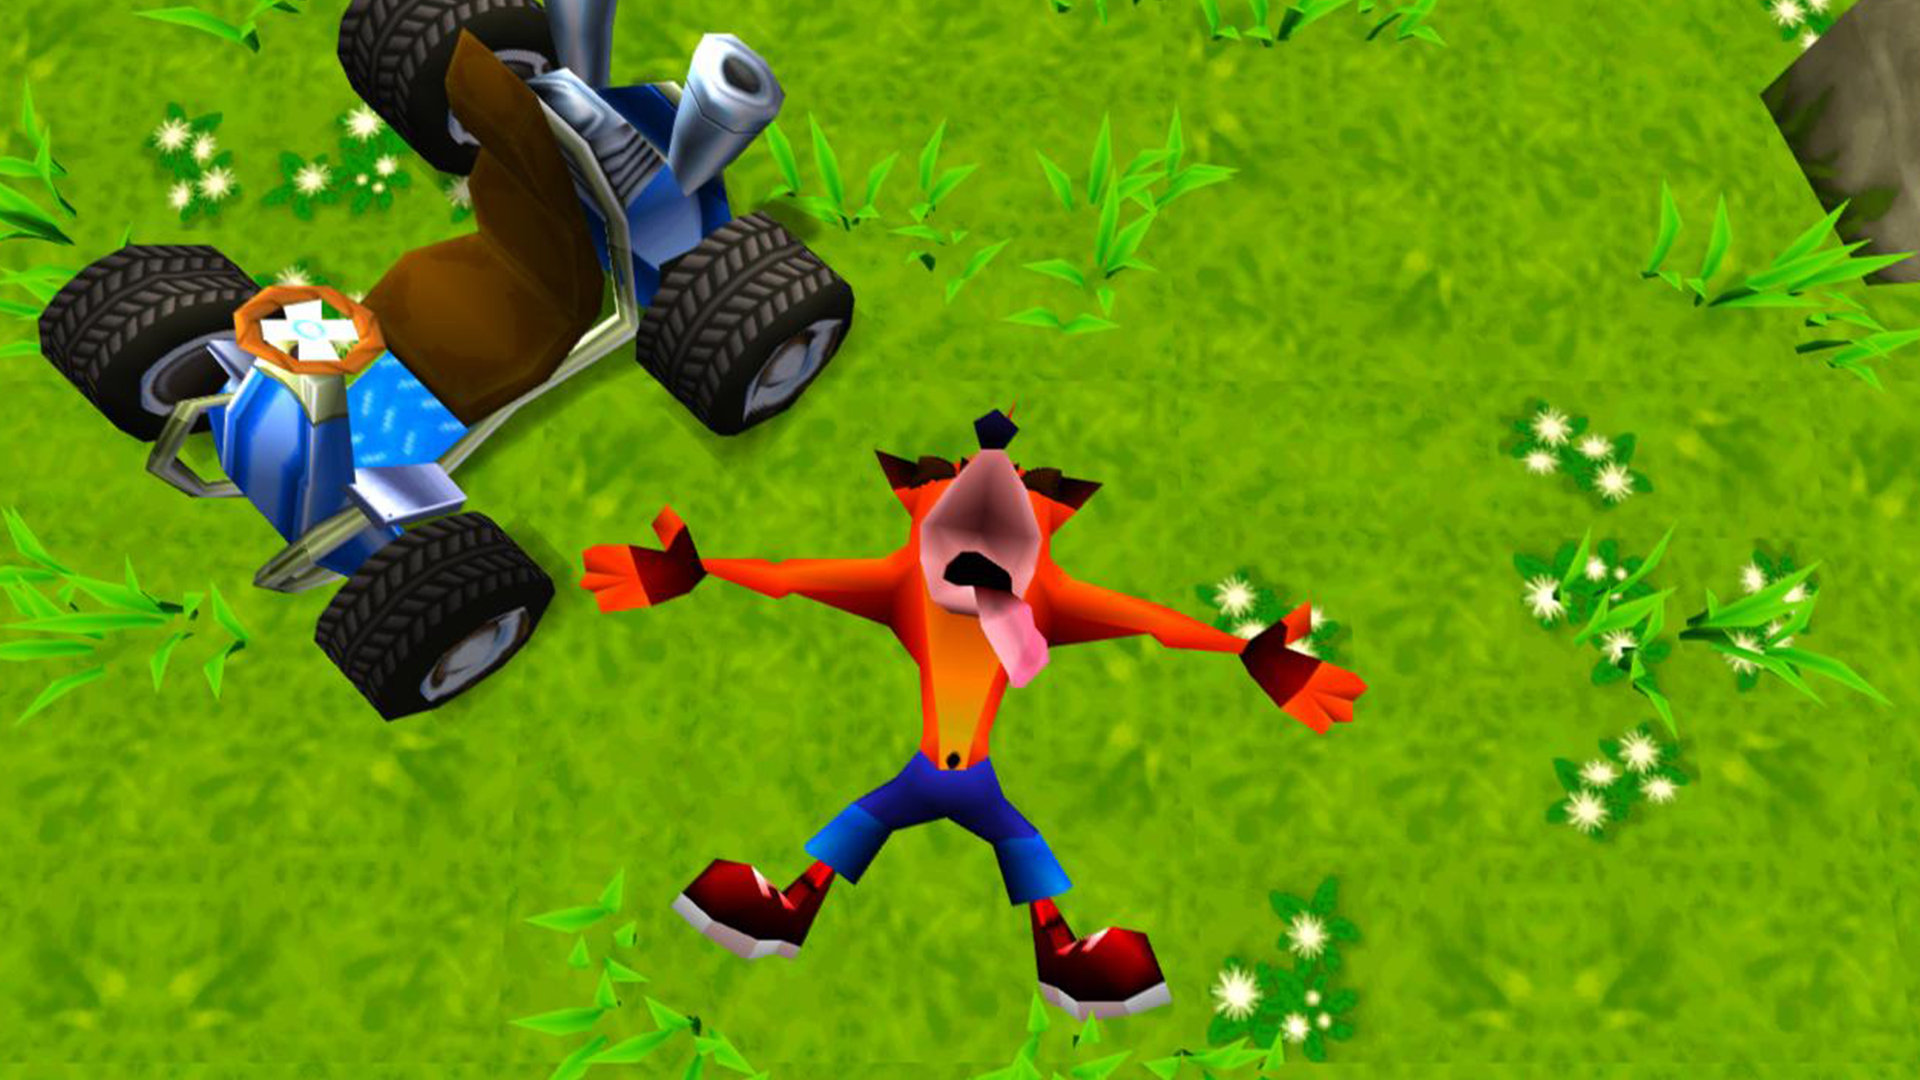 Ctr Crash Team Racing Remake Will Reportedly Debut At The